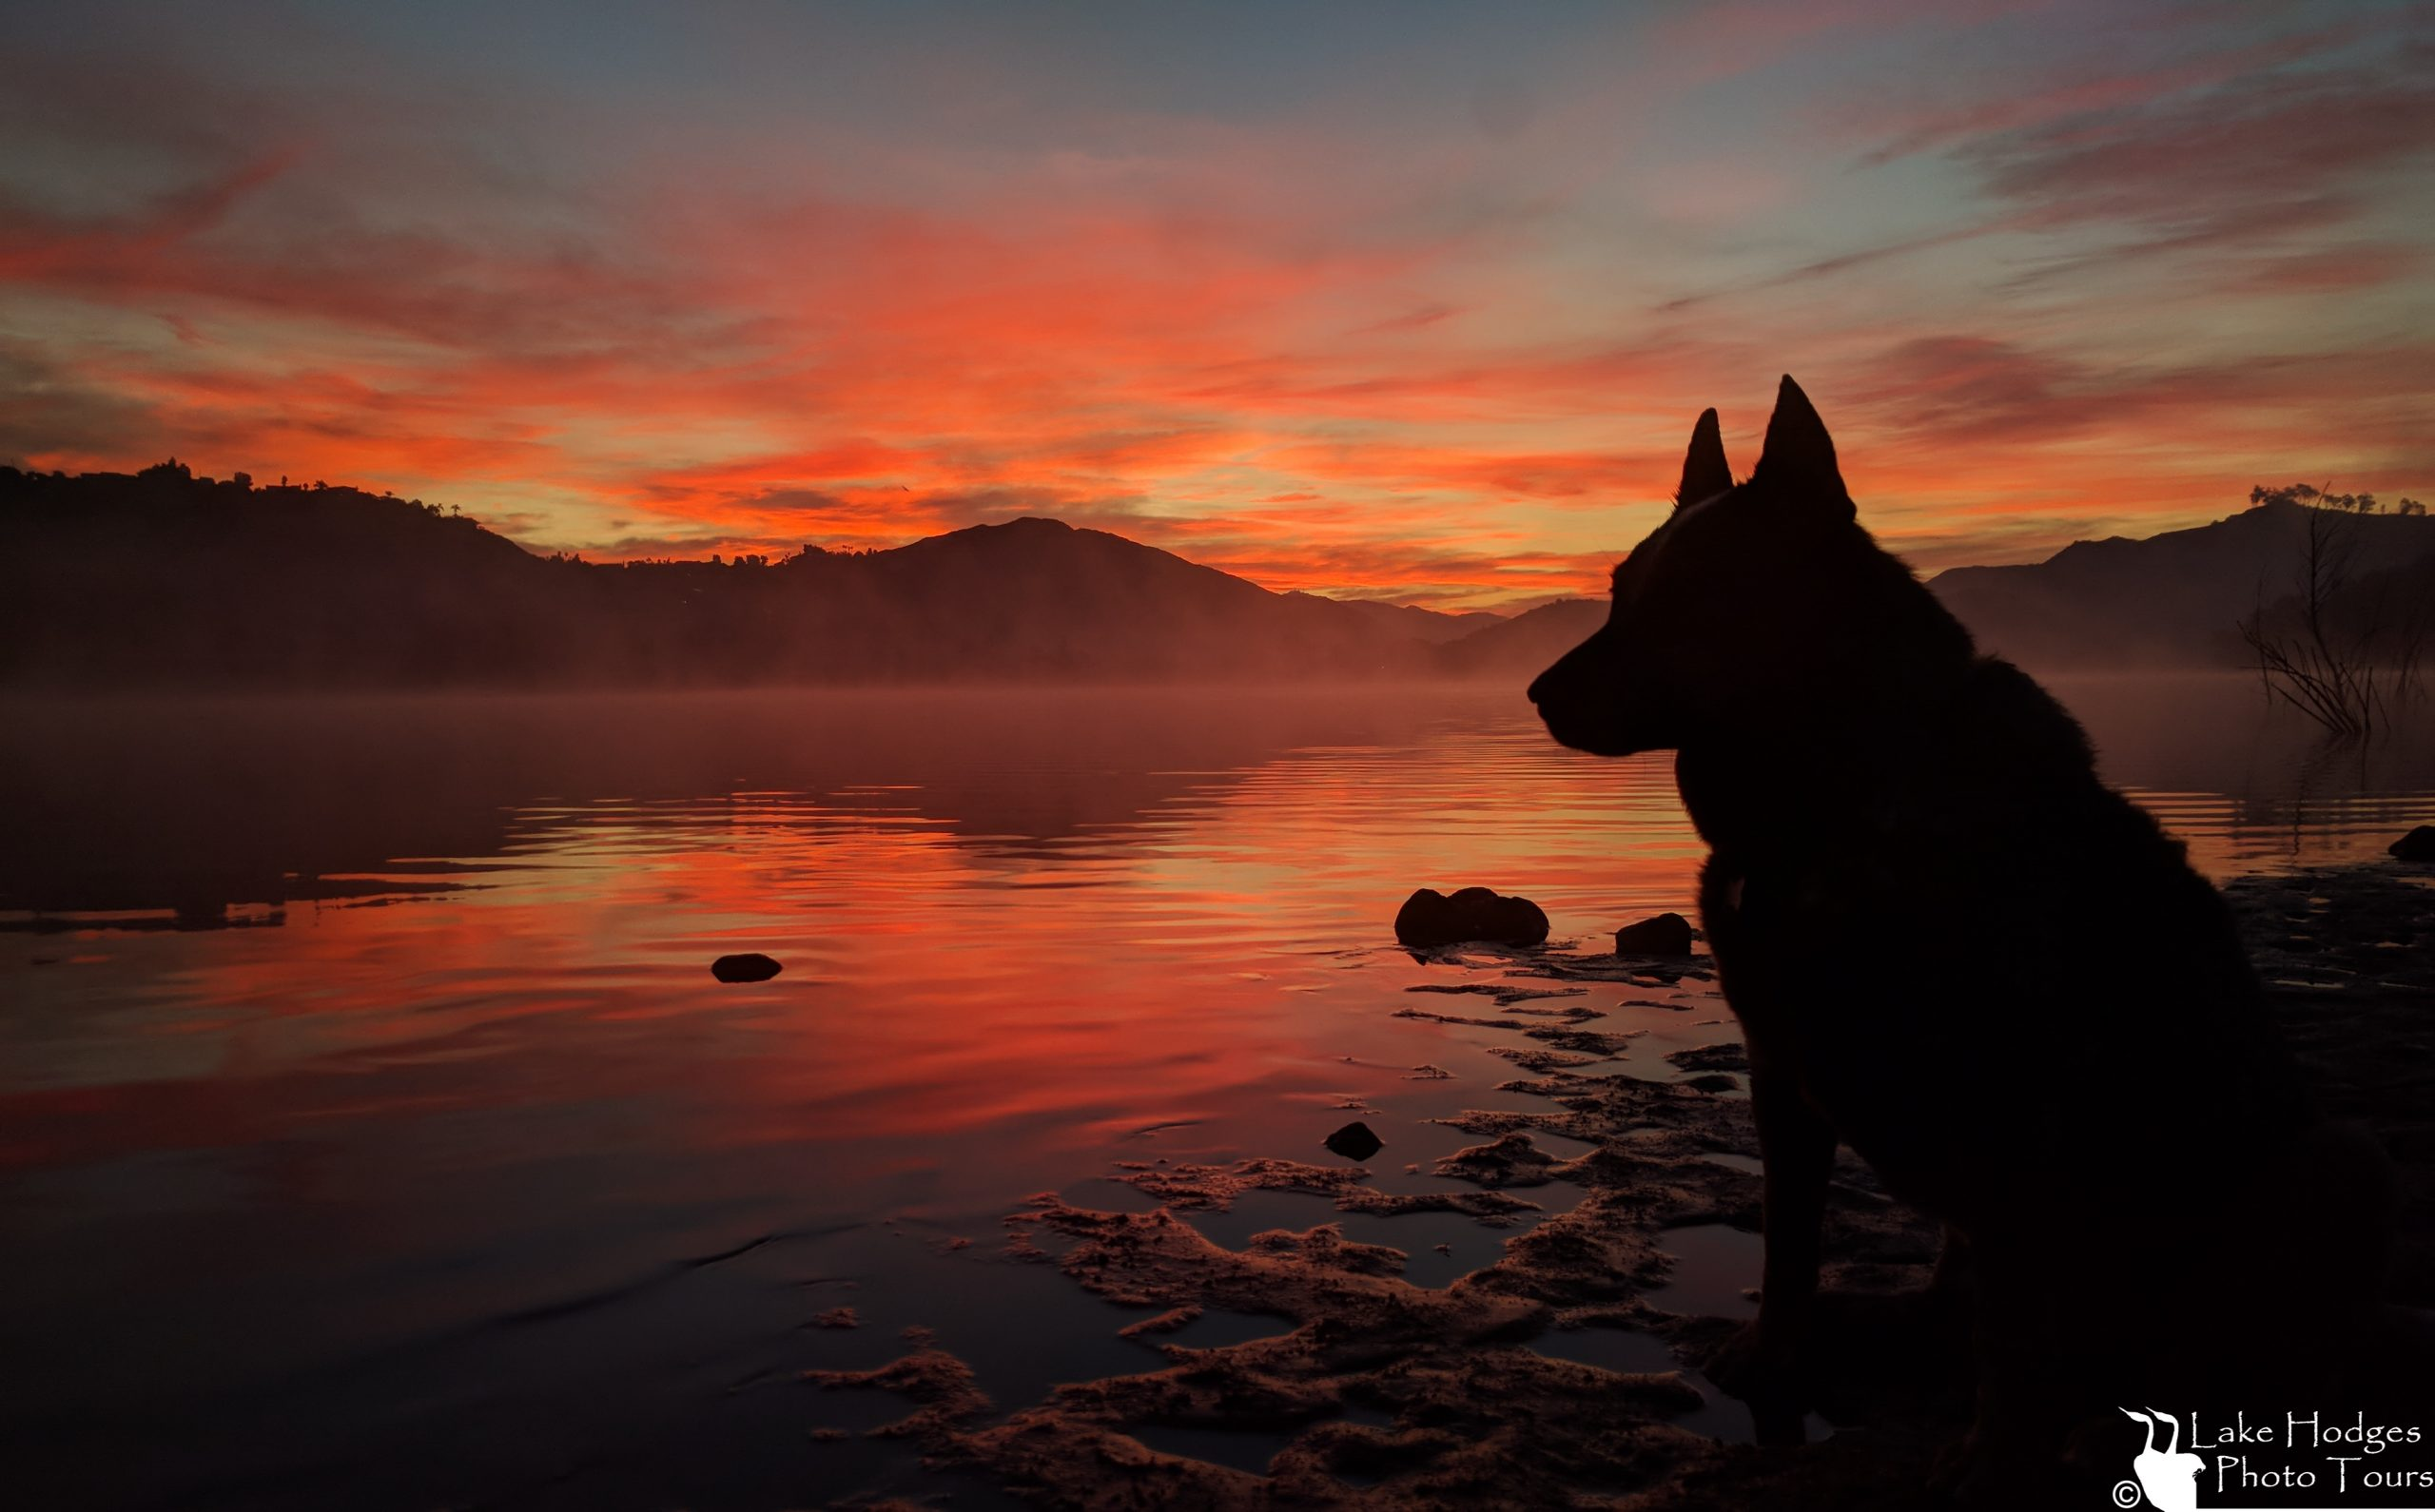 Angus sunrise at Lake Hodges Photo Tours.